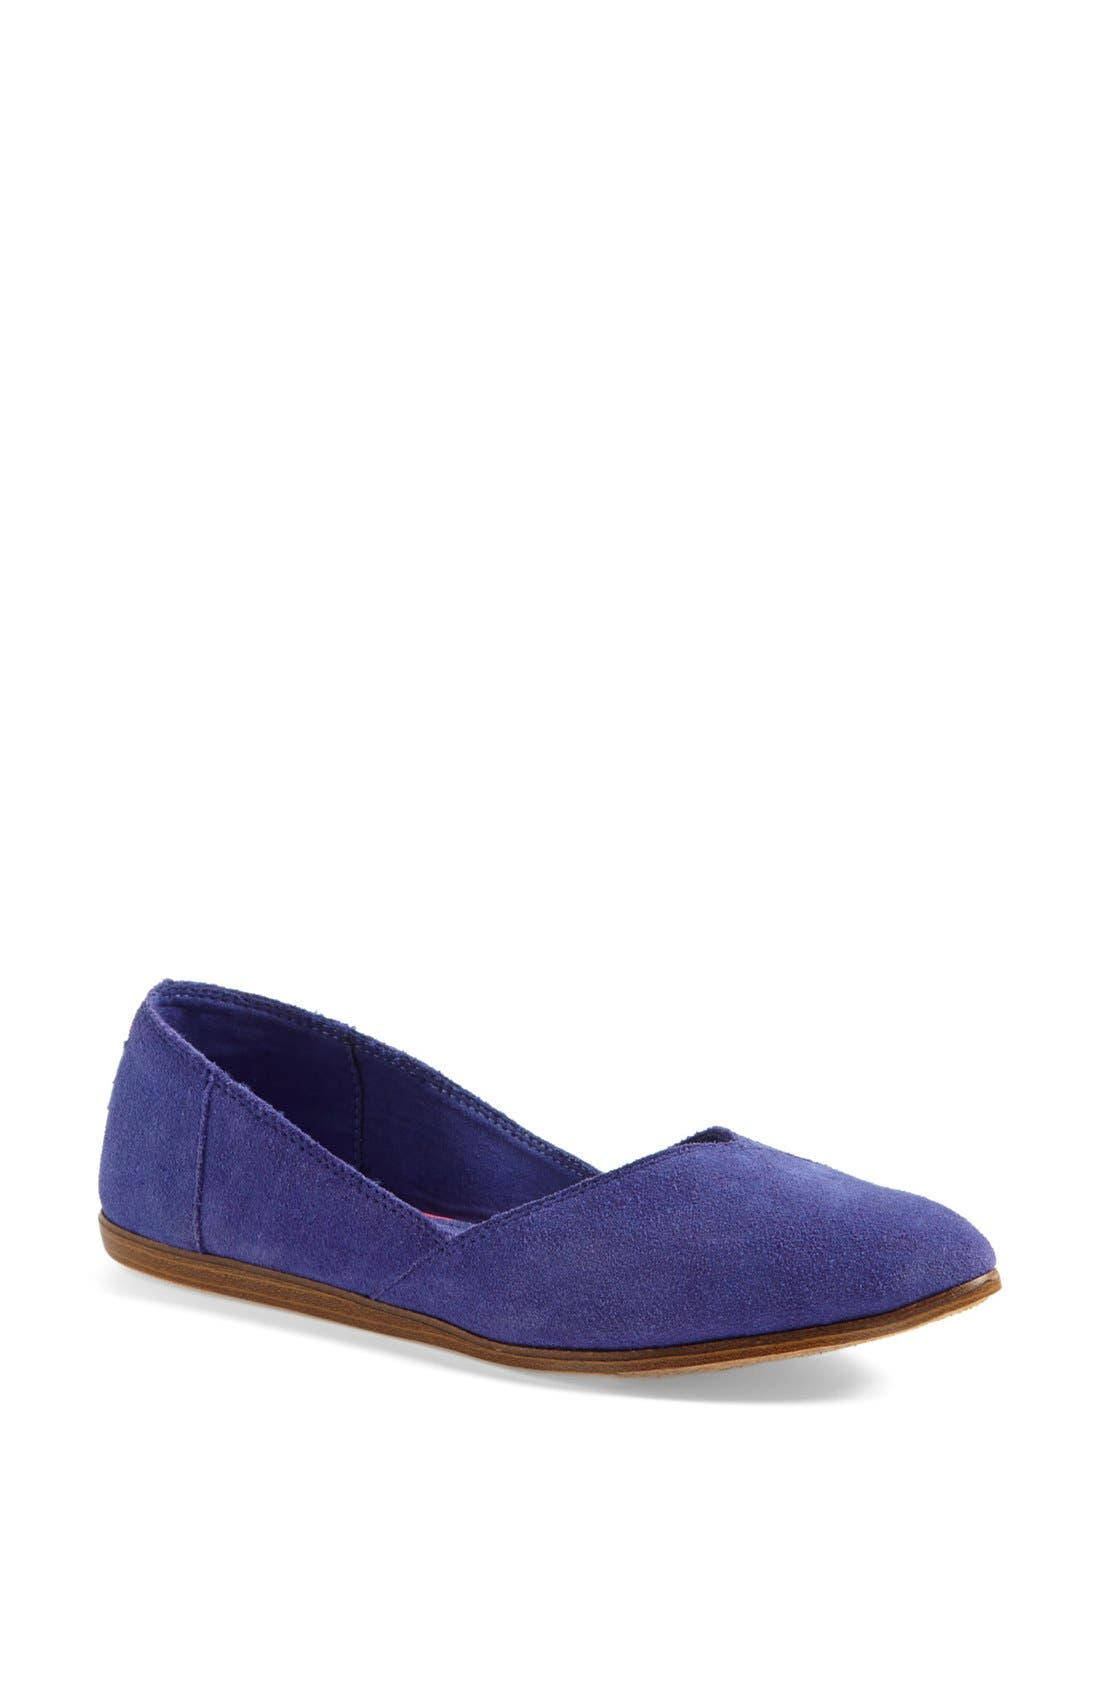 Main Image - TOMS 'Jutti' Slip-On (Women)